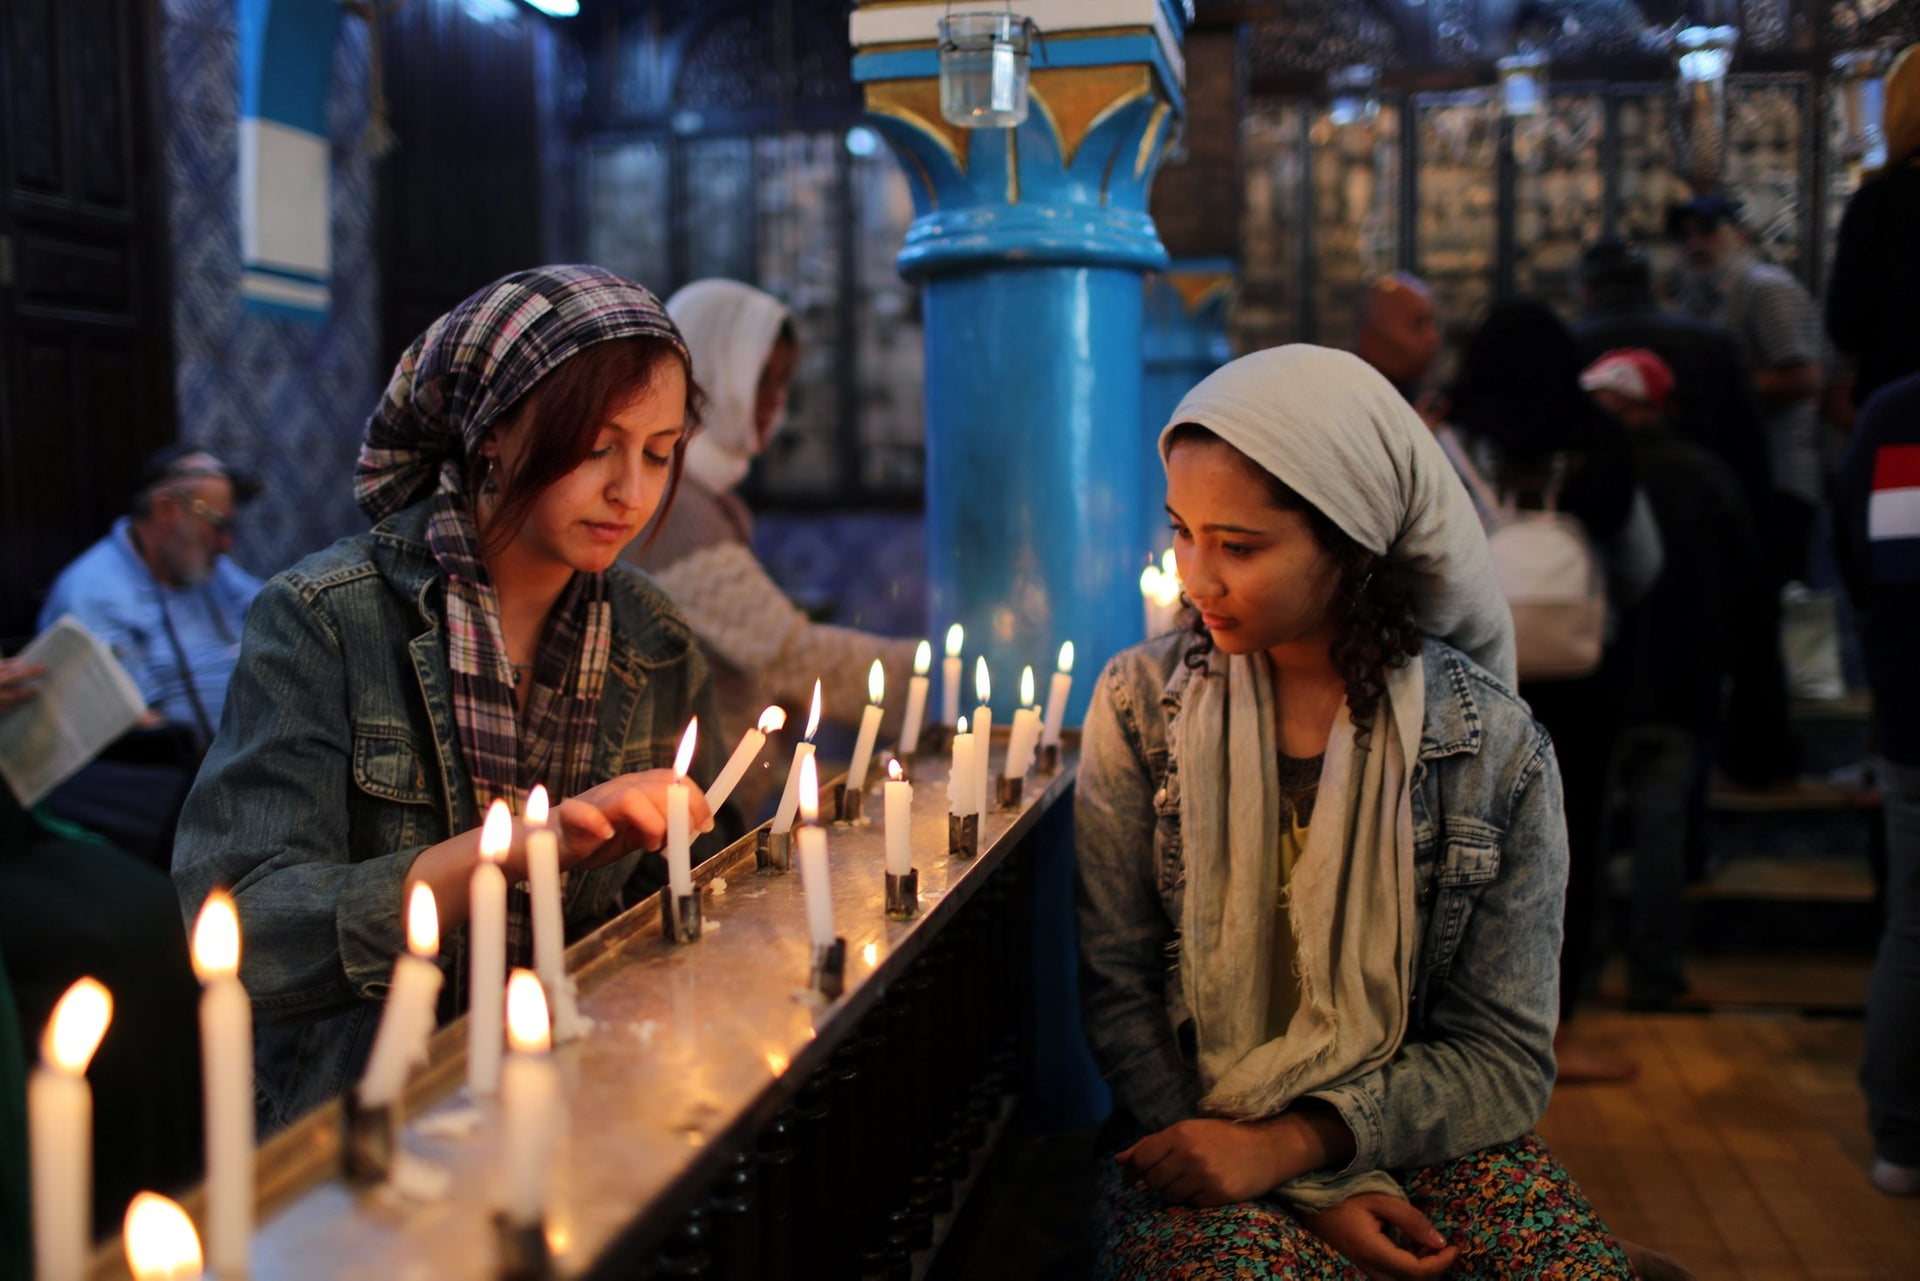 Cyrine Ben Said (L) and Amnia Ben Khalif, Muslim Tunisians, light candles during a religious ceremony at Ghriba, the oldest Jewish synagogue in Africa, during an annual pilgrimage in Djerba, Tunisia May 2, 2018. Picture taken May 2, 2018.